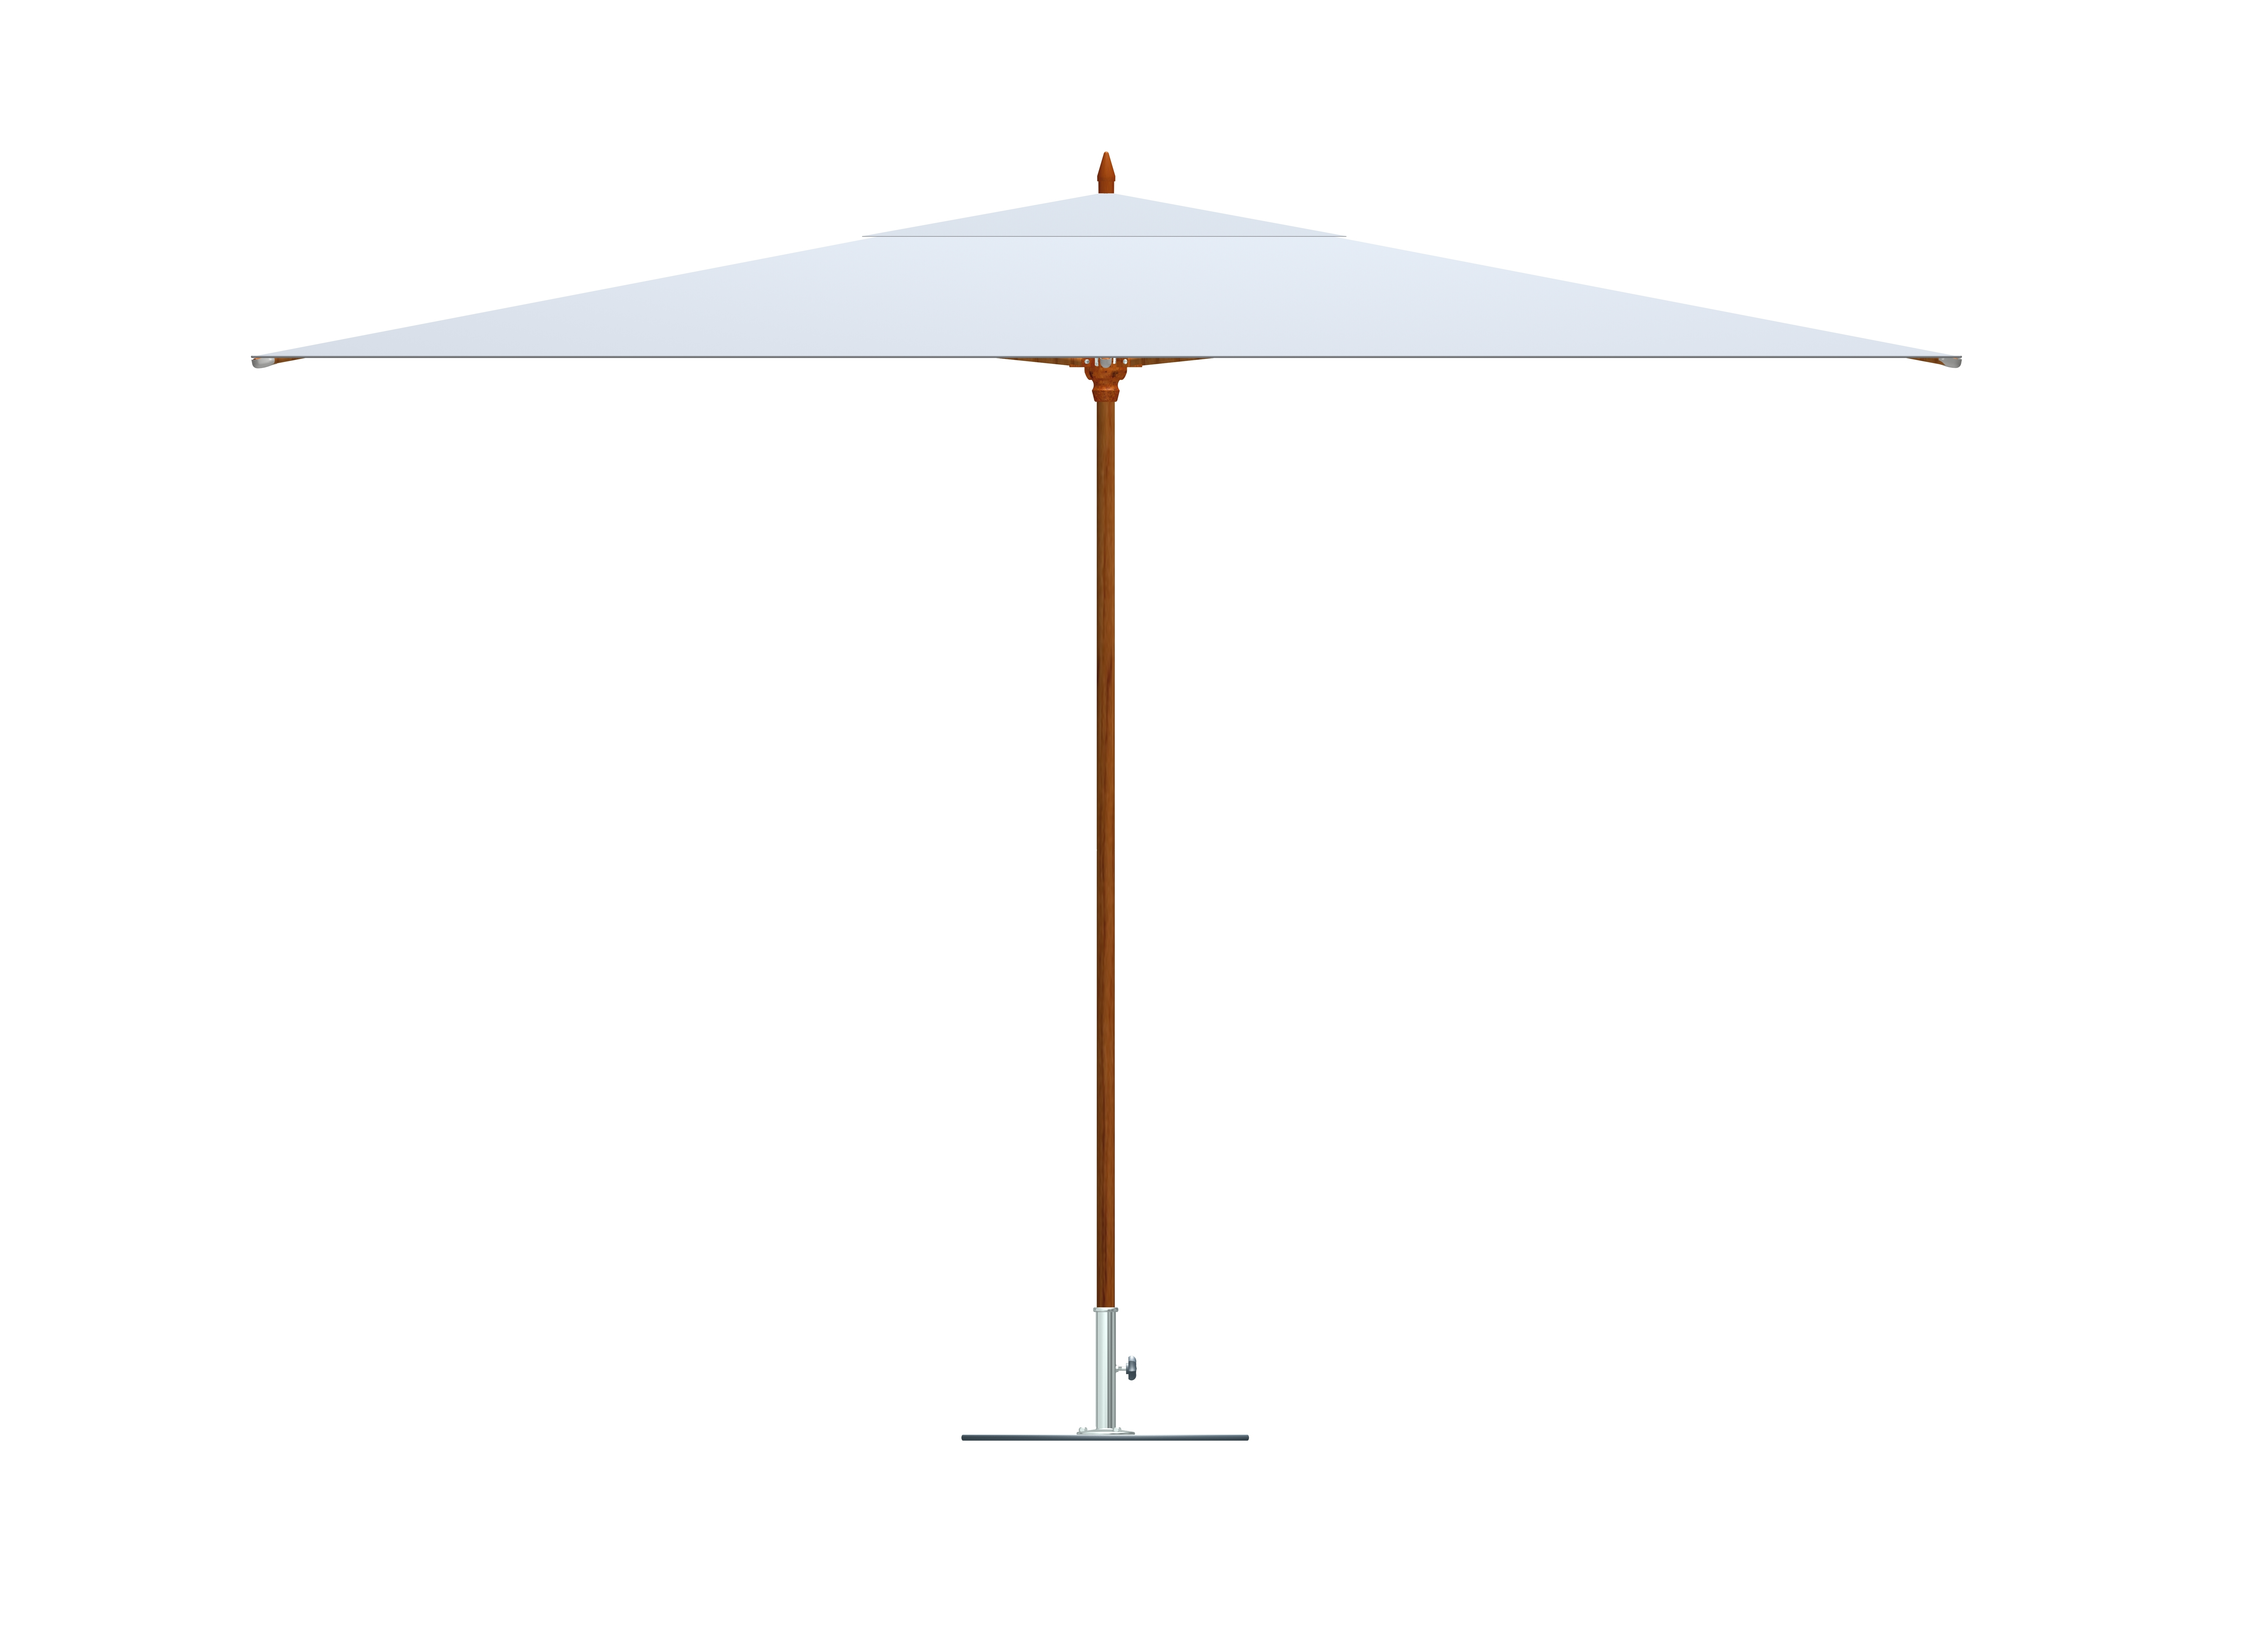 White Patio Umbrellas Intended For Latest Outdoor Umbrellas And Bases – Tuuci Floor Sample Sale – Bluesky (View 16 of 20)